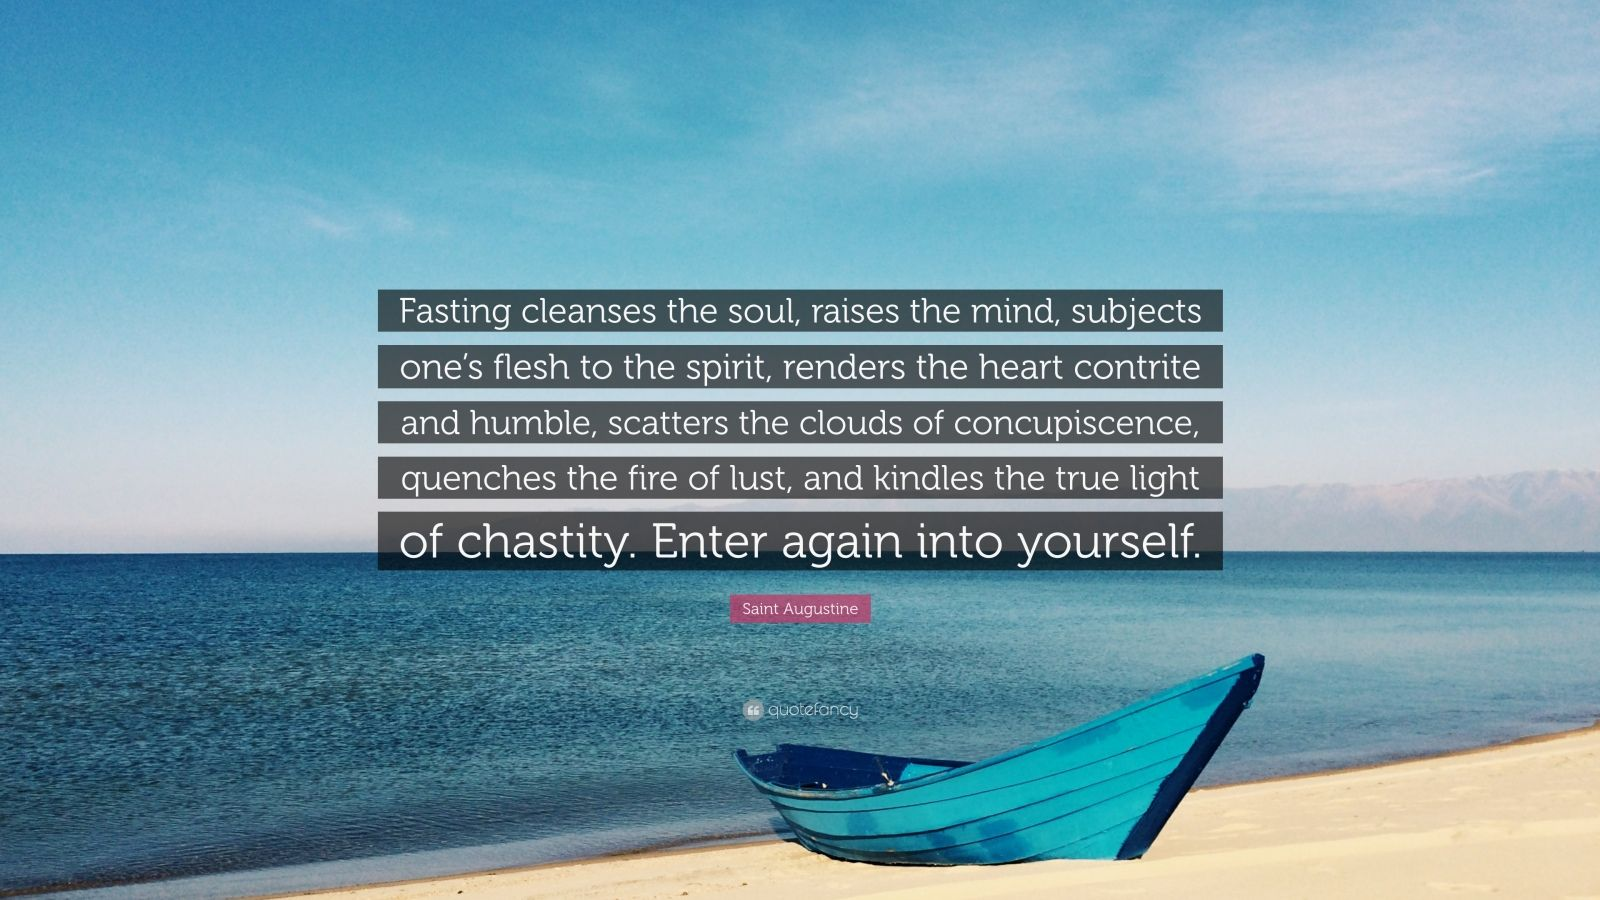 """Saint Augustine Quote: """"Fasting cleanses the soul, raises the mind, subjects one's flesh to the spirit, renders the heart contrite and humble, scatters the clouds of concupiscence, quenches the fire of lust, and kindles the true light of chastity. Enter again into yourself."""""""